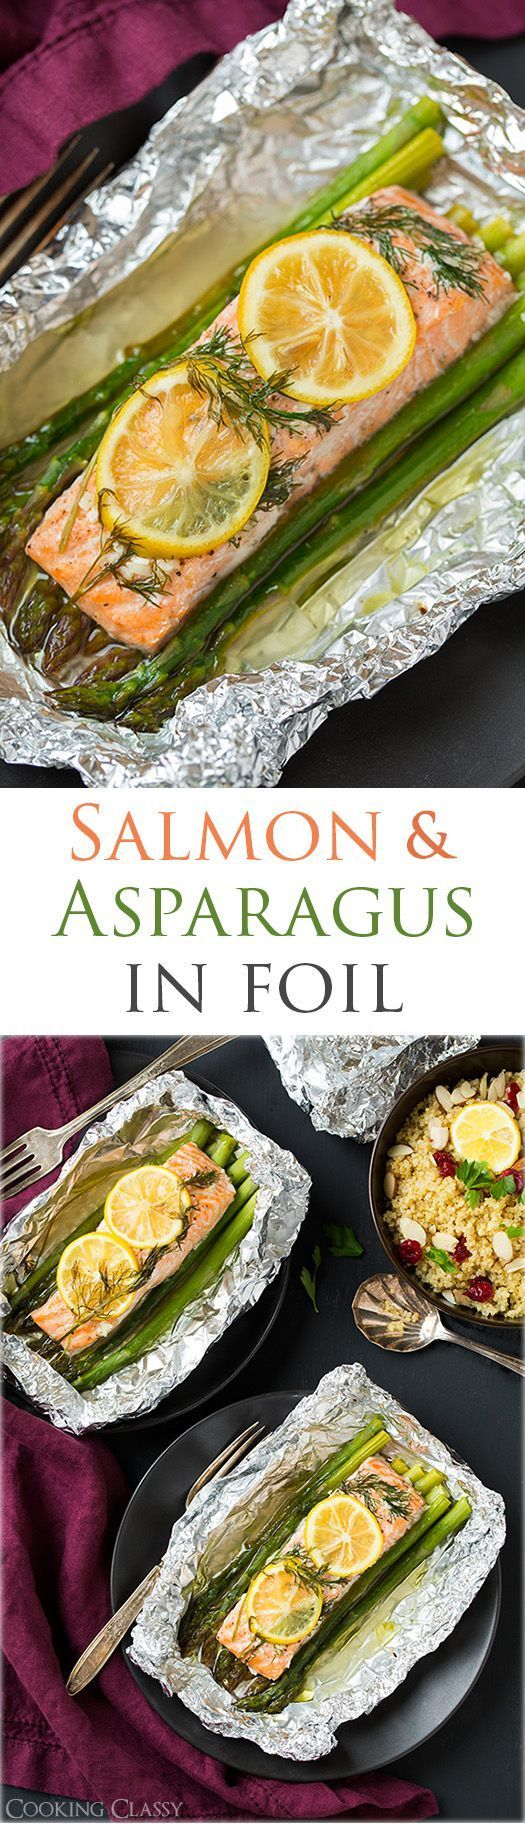 Baked Salmon and Asparagus in Foil - this is one of the easiest dinners ever it tastes amazing it's perfectly healthy and clean up is a breeze!